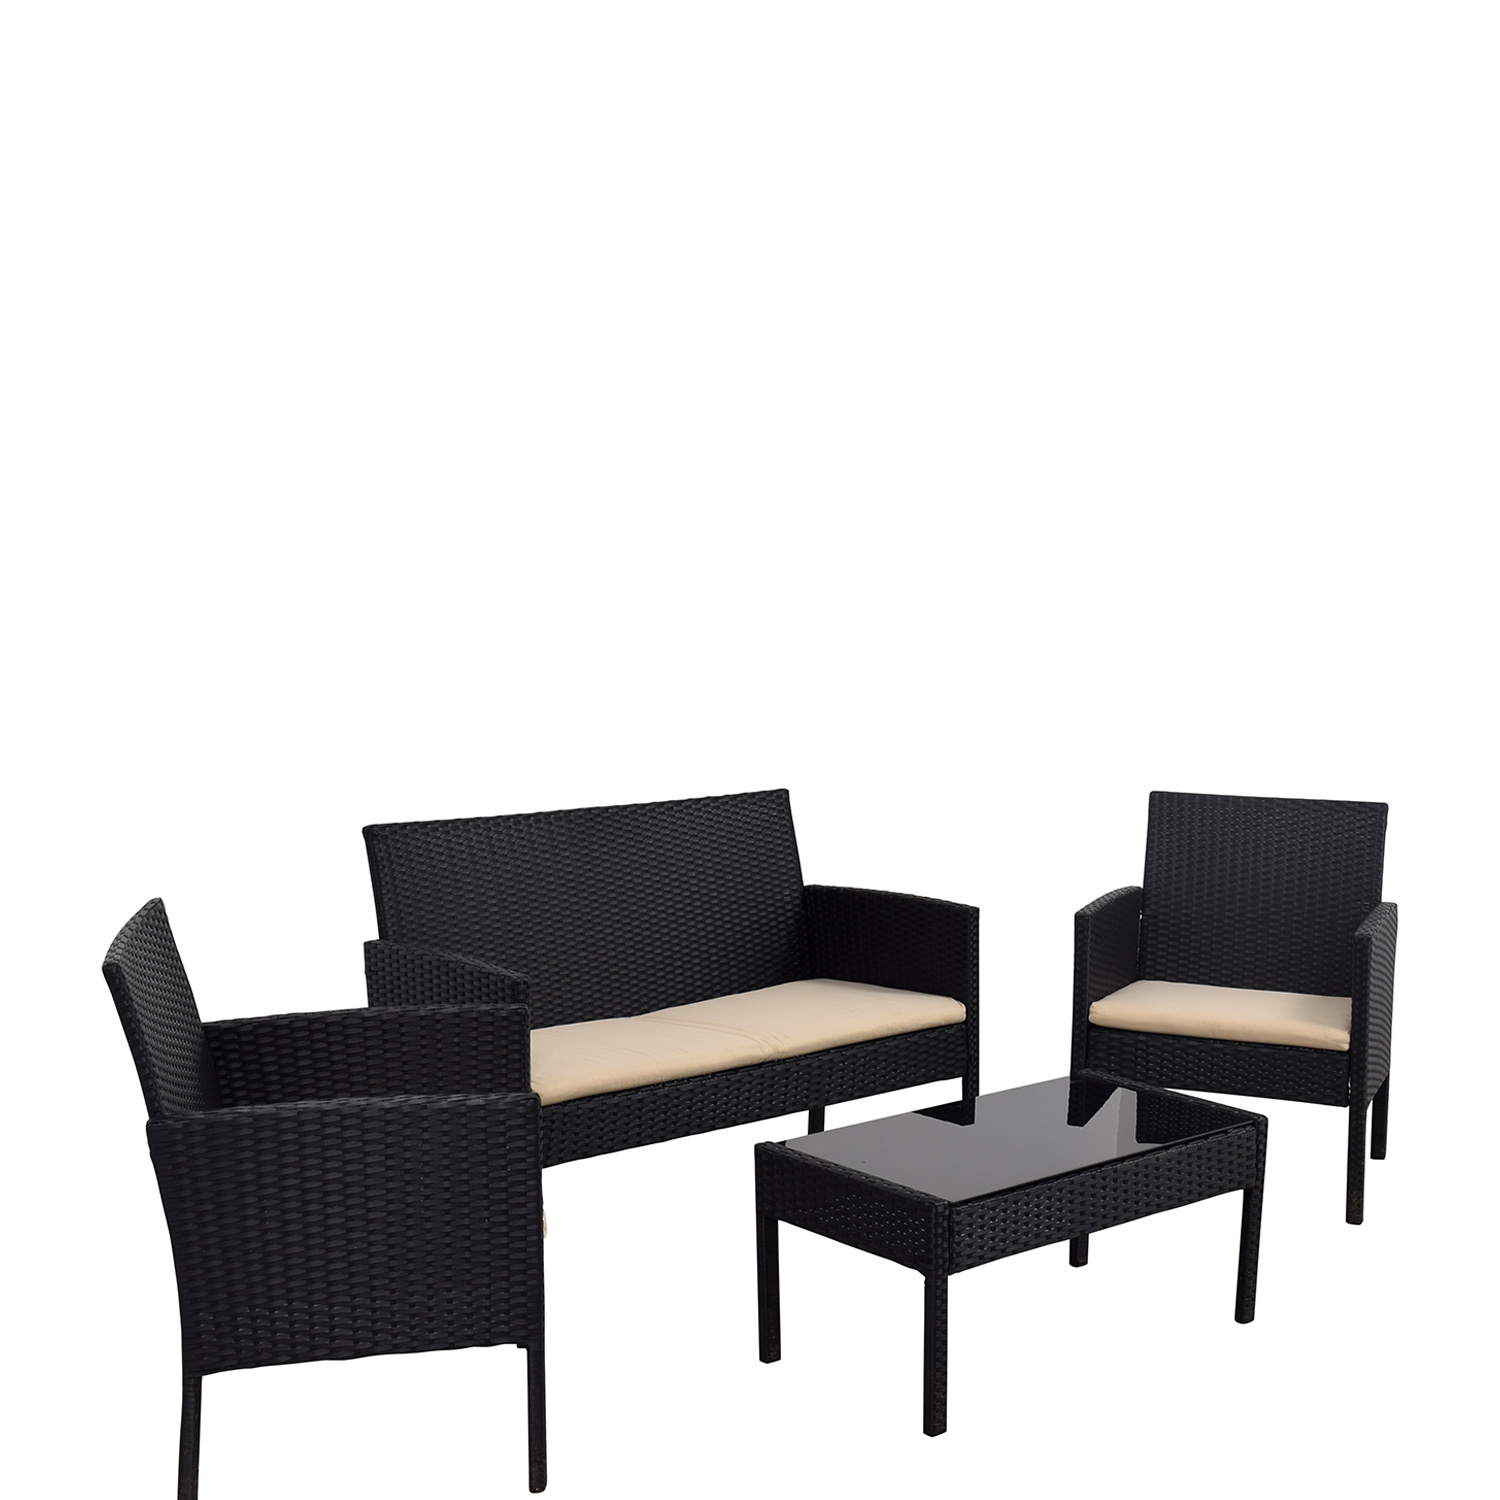 56 off radeway radeway black outdoor garden patio for Find patio furniture